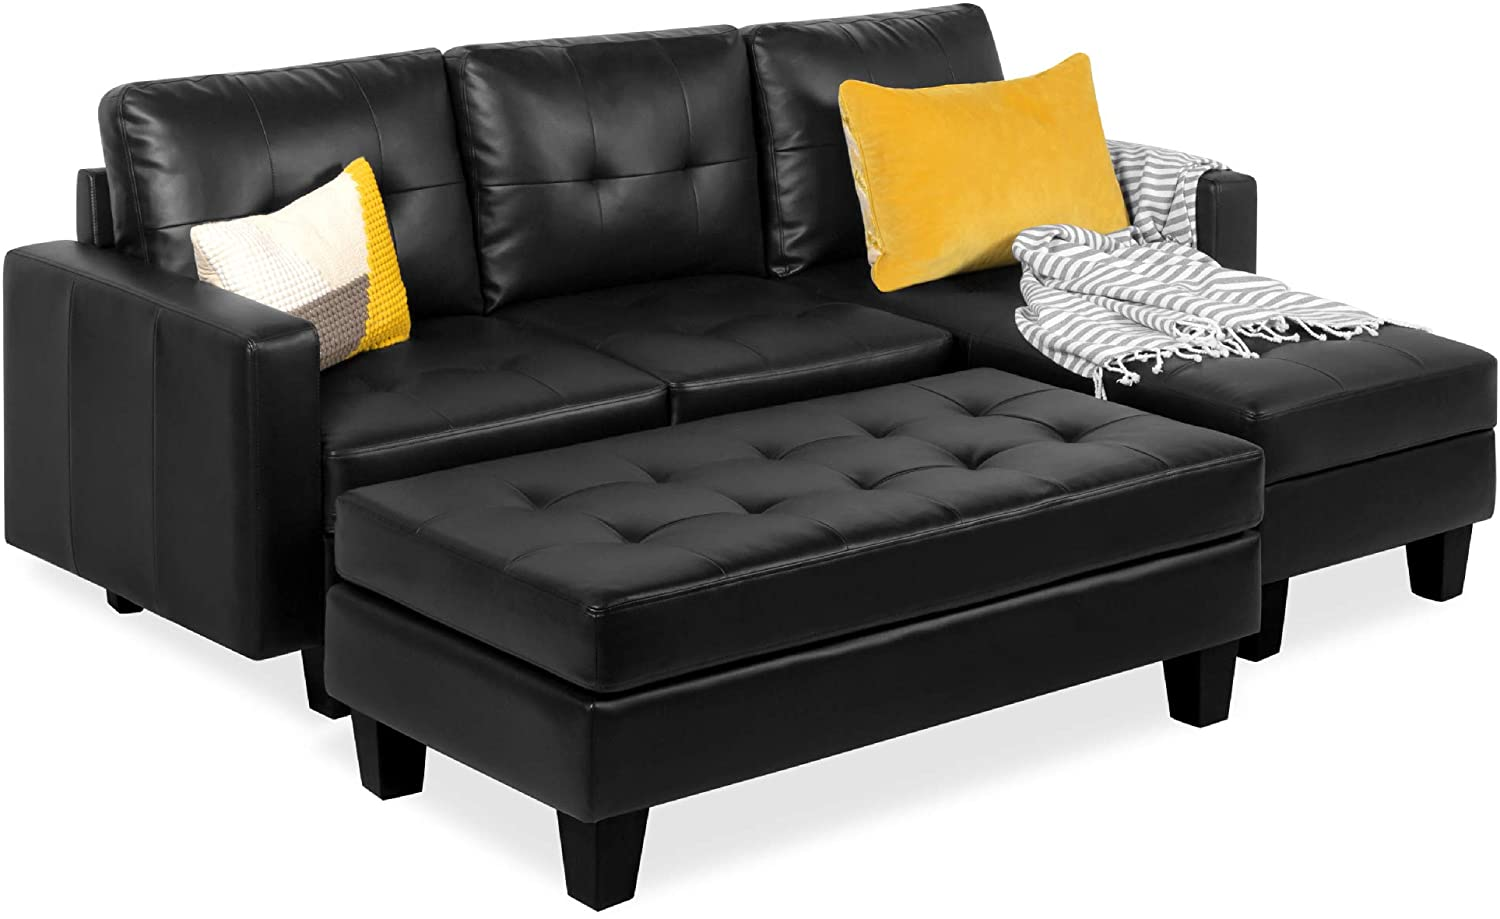 best choice products tufted faux leather 3 seat l shape sectional sofa couch set w chaise lounge ottoman coffee table bench black